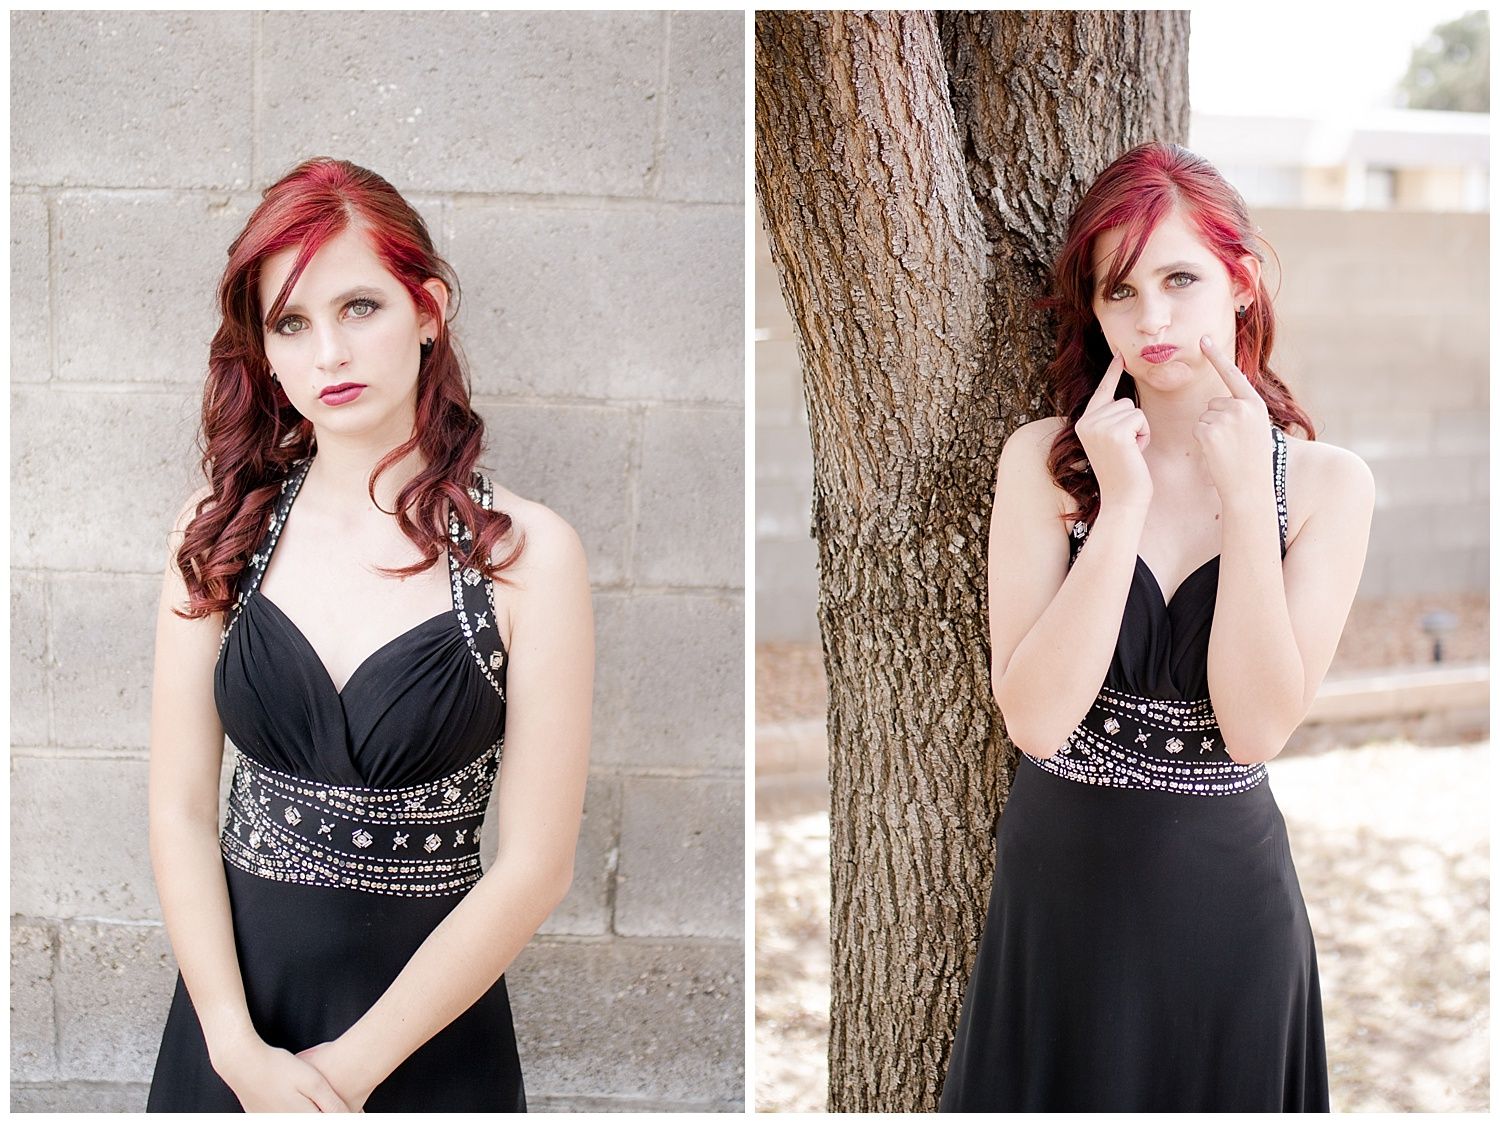 Senior Spokesmodel Team styled shoot. Red carpet hair, make up and dresses. Black dress with red hair